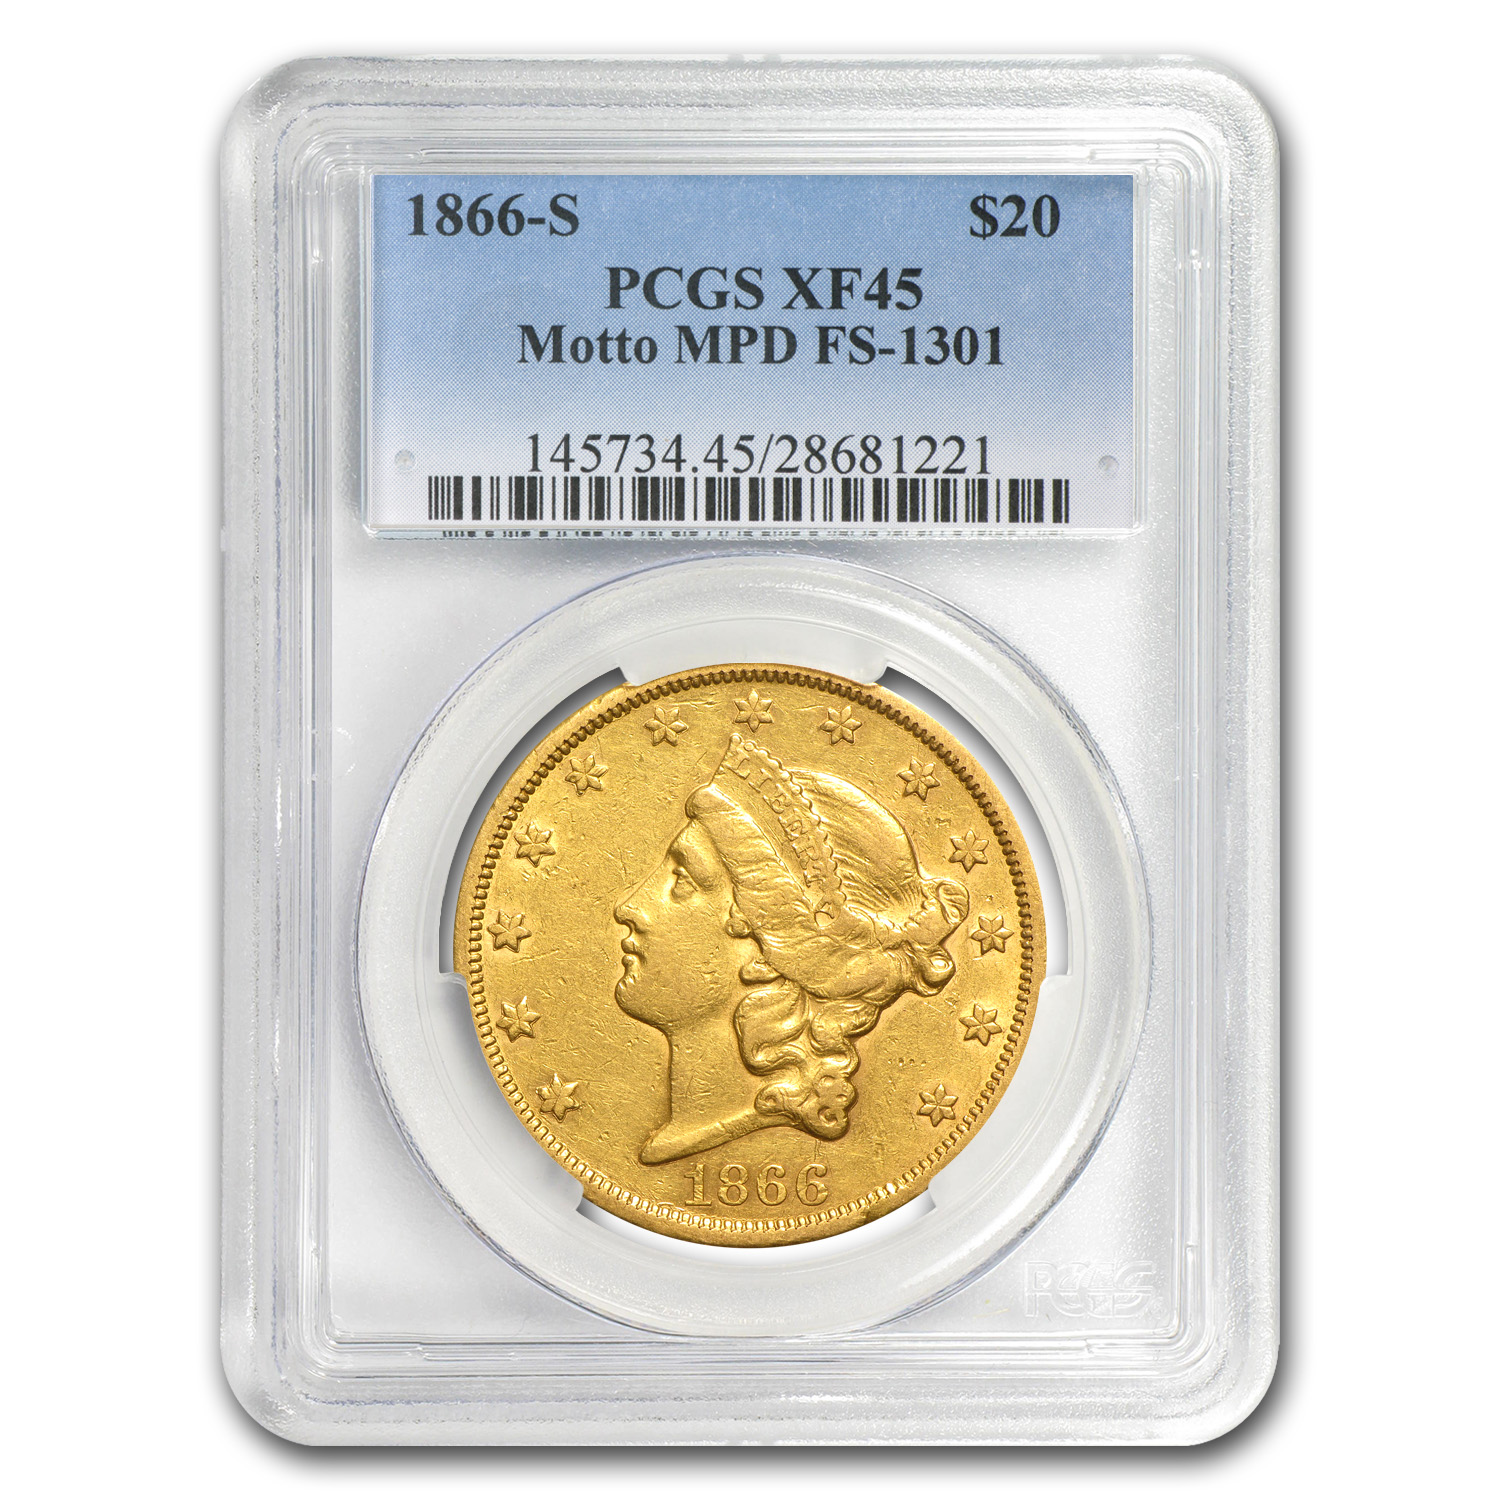 1866-S $20 Gold Liberty Double Eagle XF-45 PCGS (w/Motto, MPD)